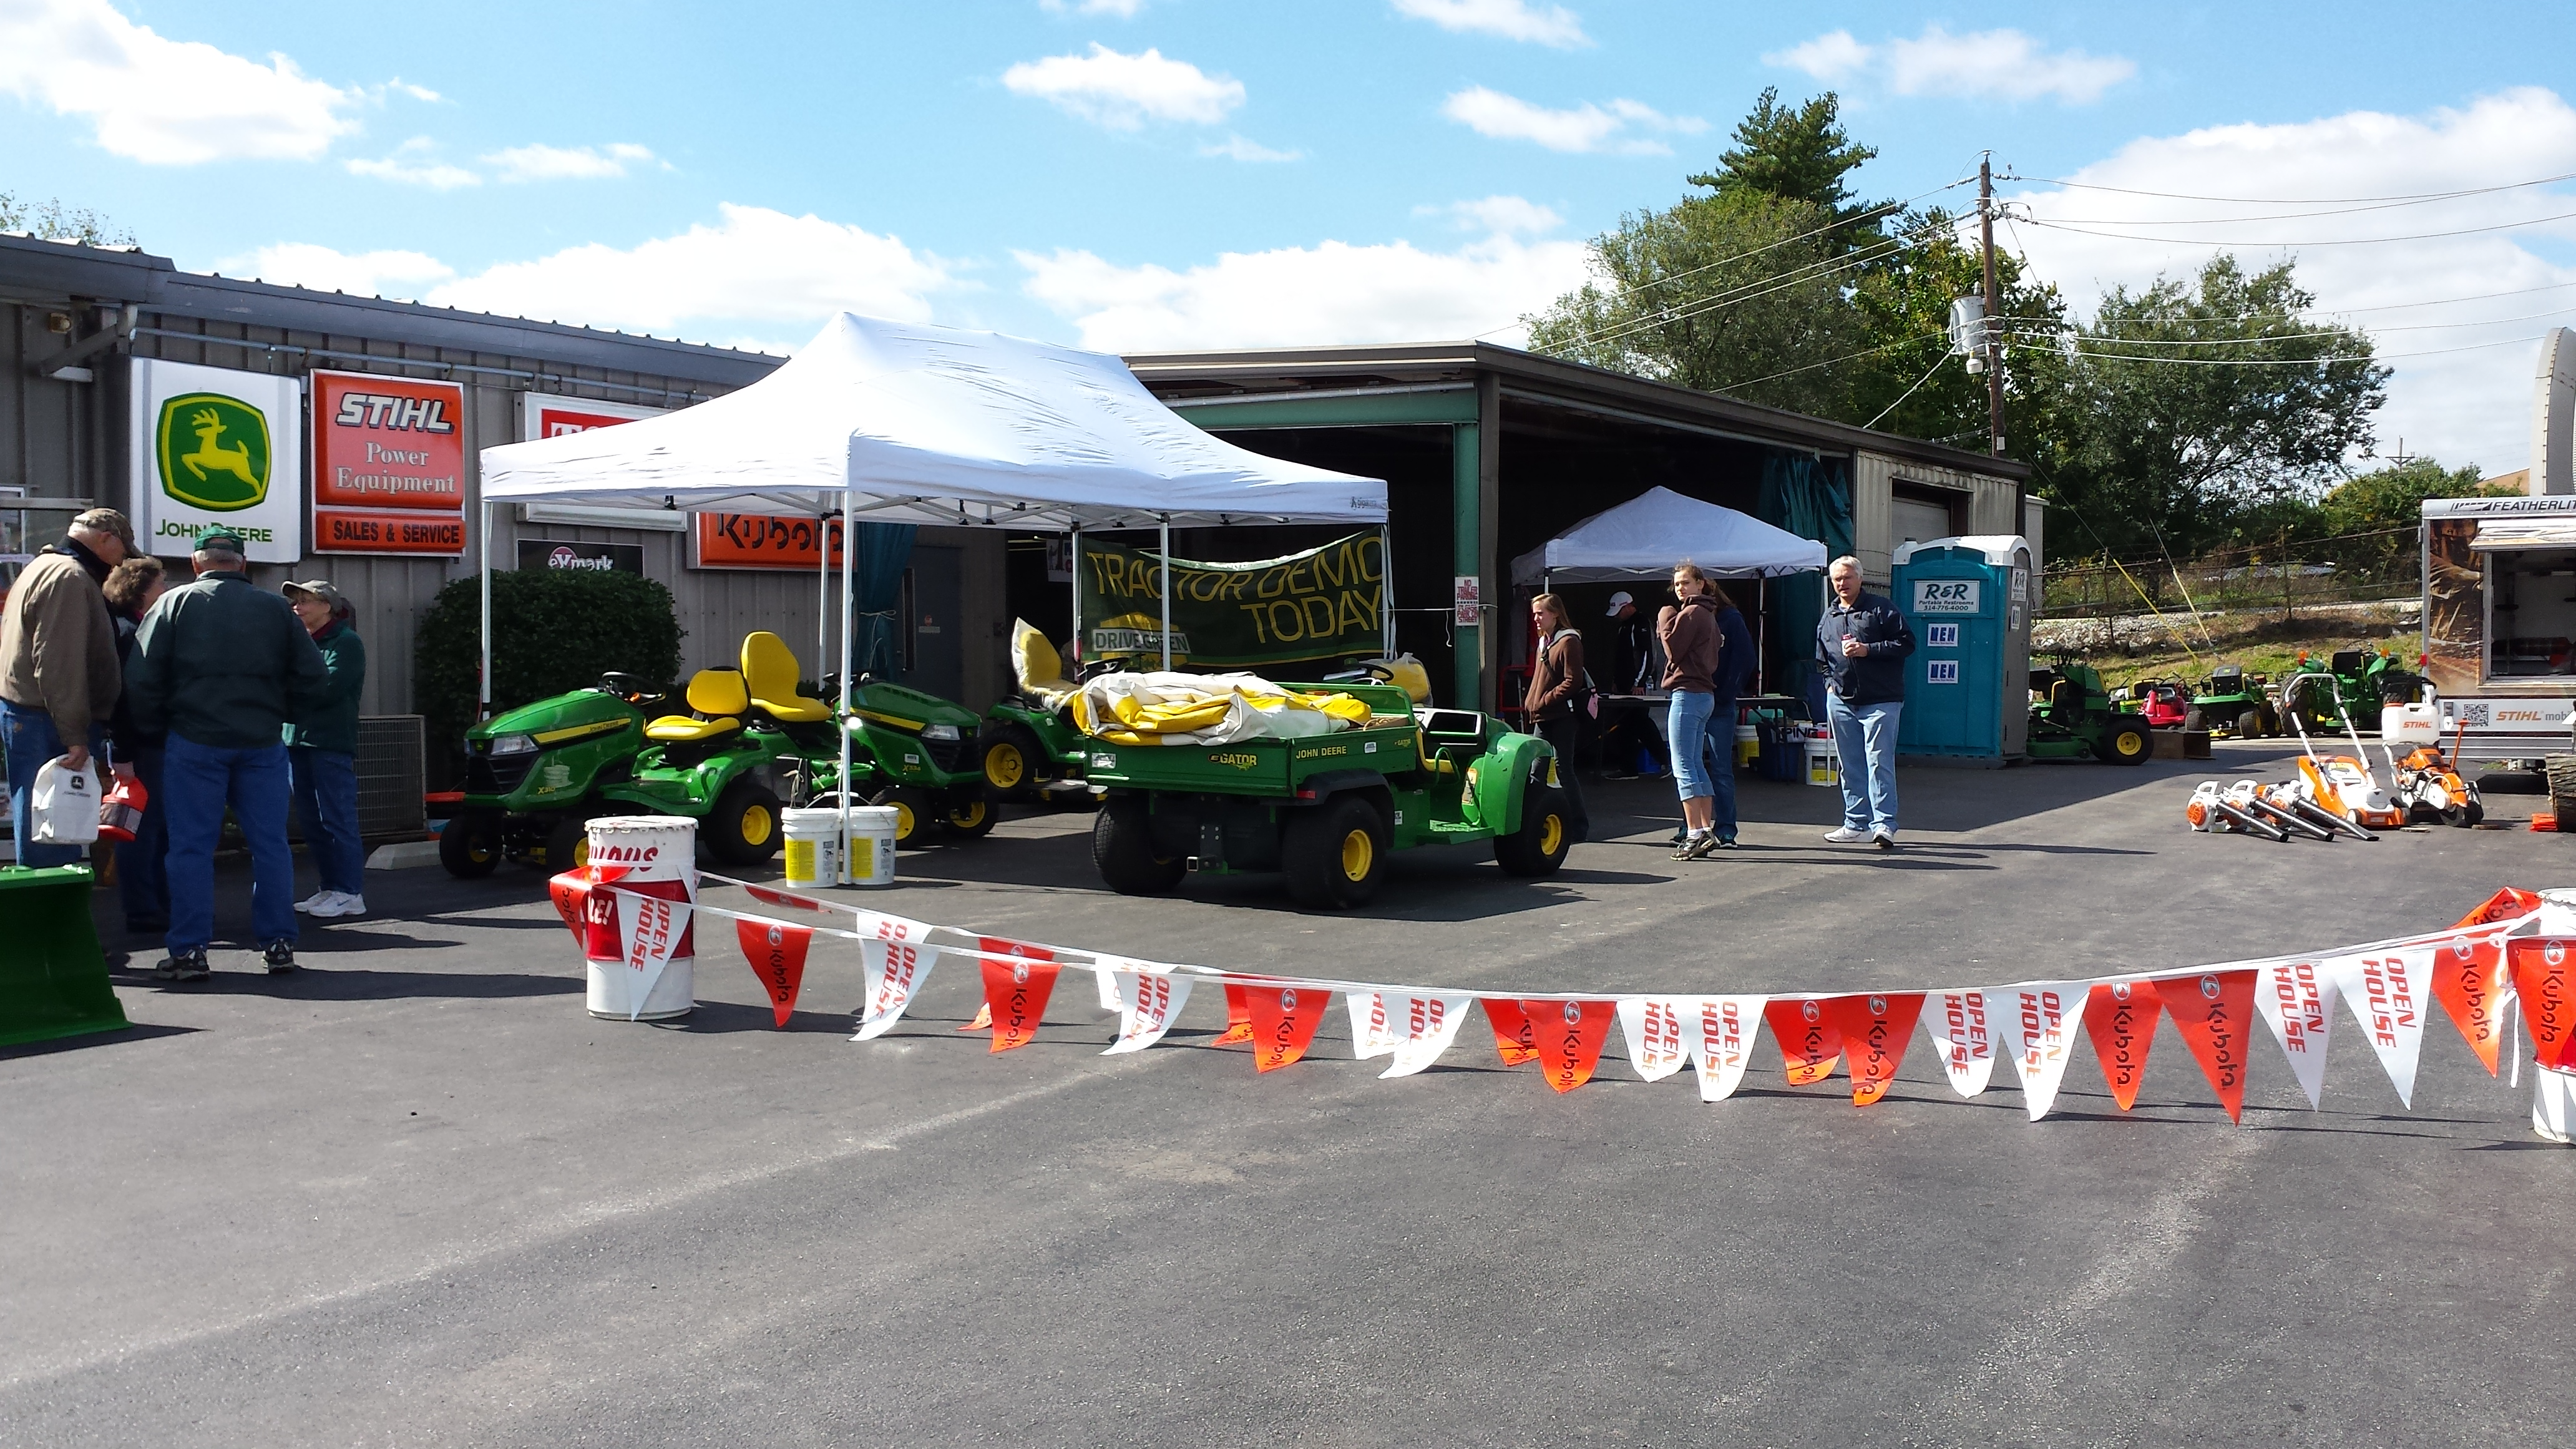 home depot john deere financing with Arts Lawn Mower Shop Inc on homedepot together with John Deere Lawn Fertilizer Spreader Parts in addition Arts Lawn Mower Shop Inc as well 586667 likewise Reynolds Lawn And Leisure Inc.